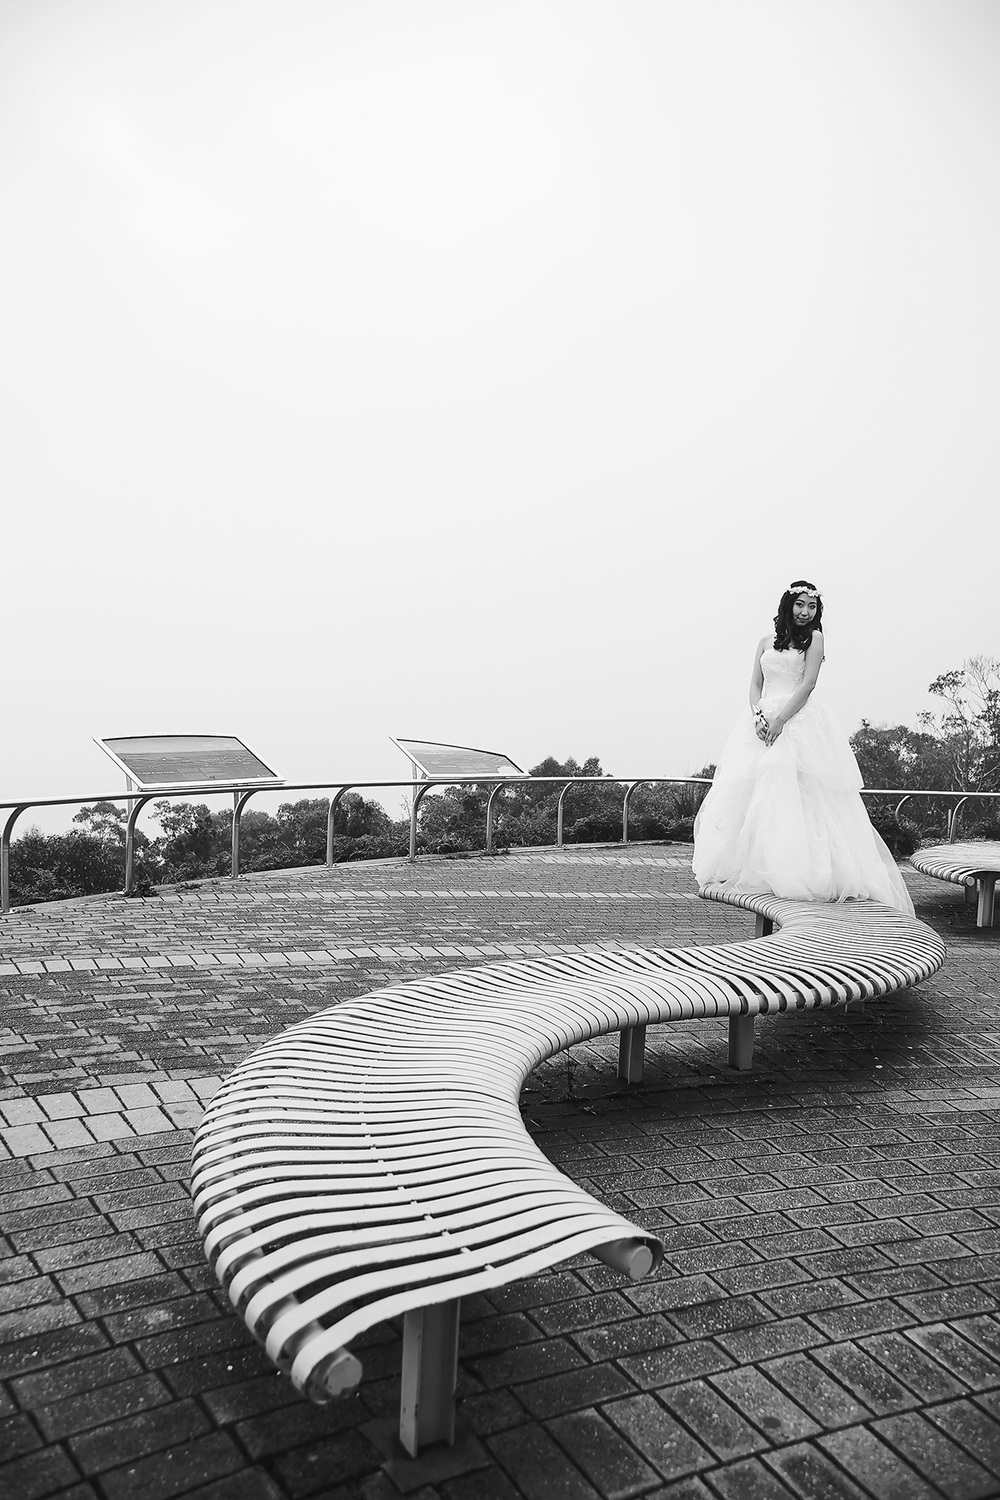 Artistic Black and White Wedding Photo 1